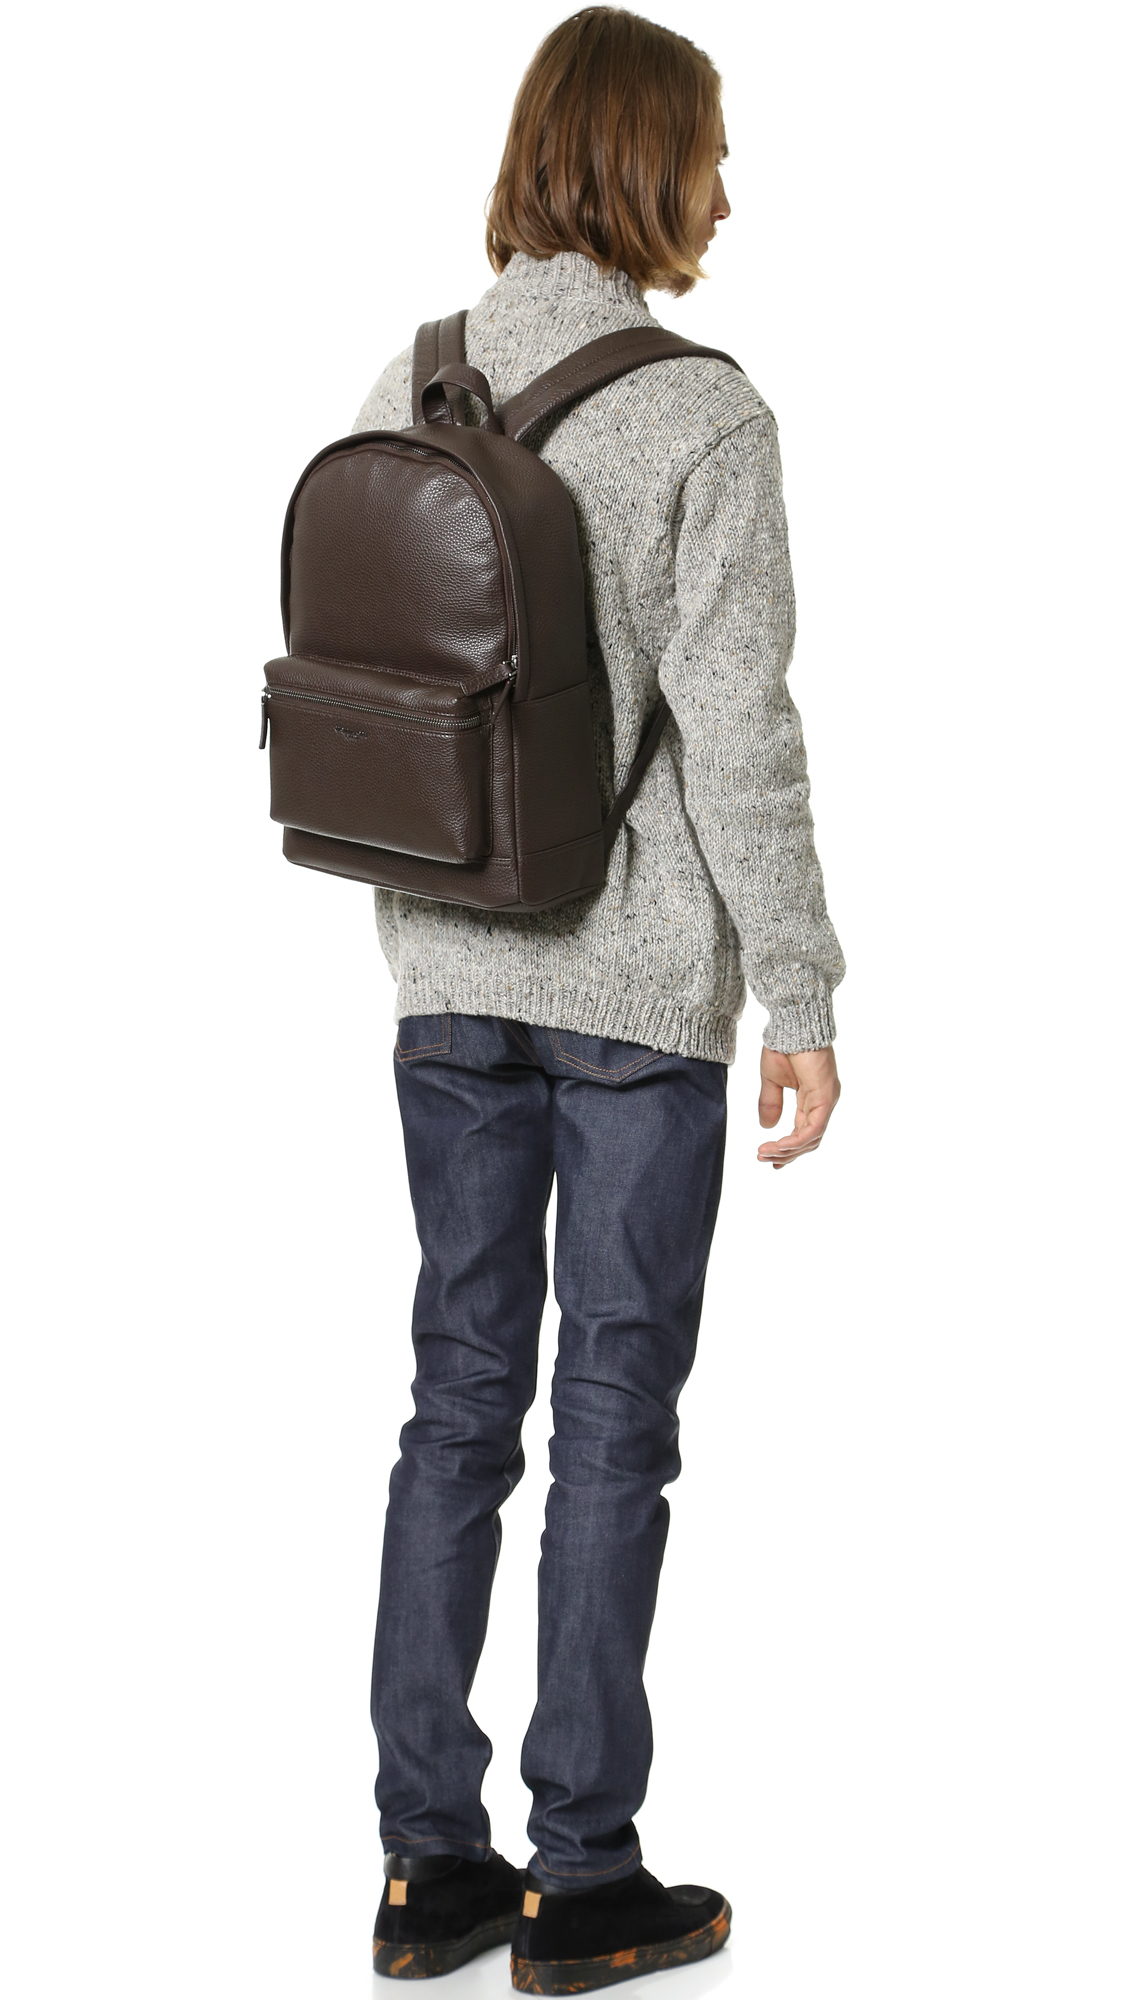 b95972a40304 Michael Kors Bryant Pebbled Leather Backpack in Brown for Men - Lyst